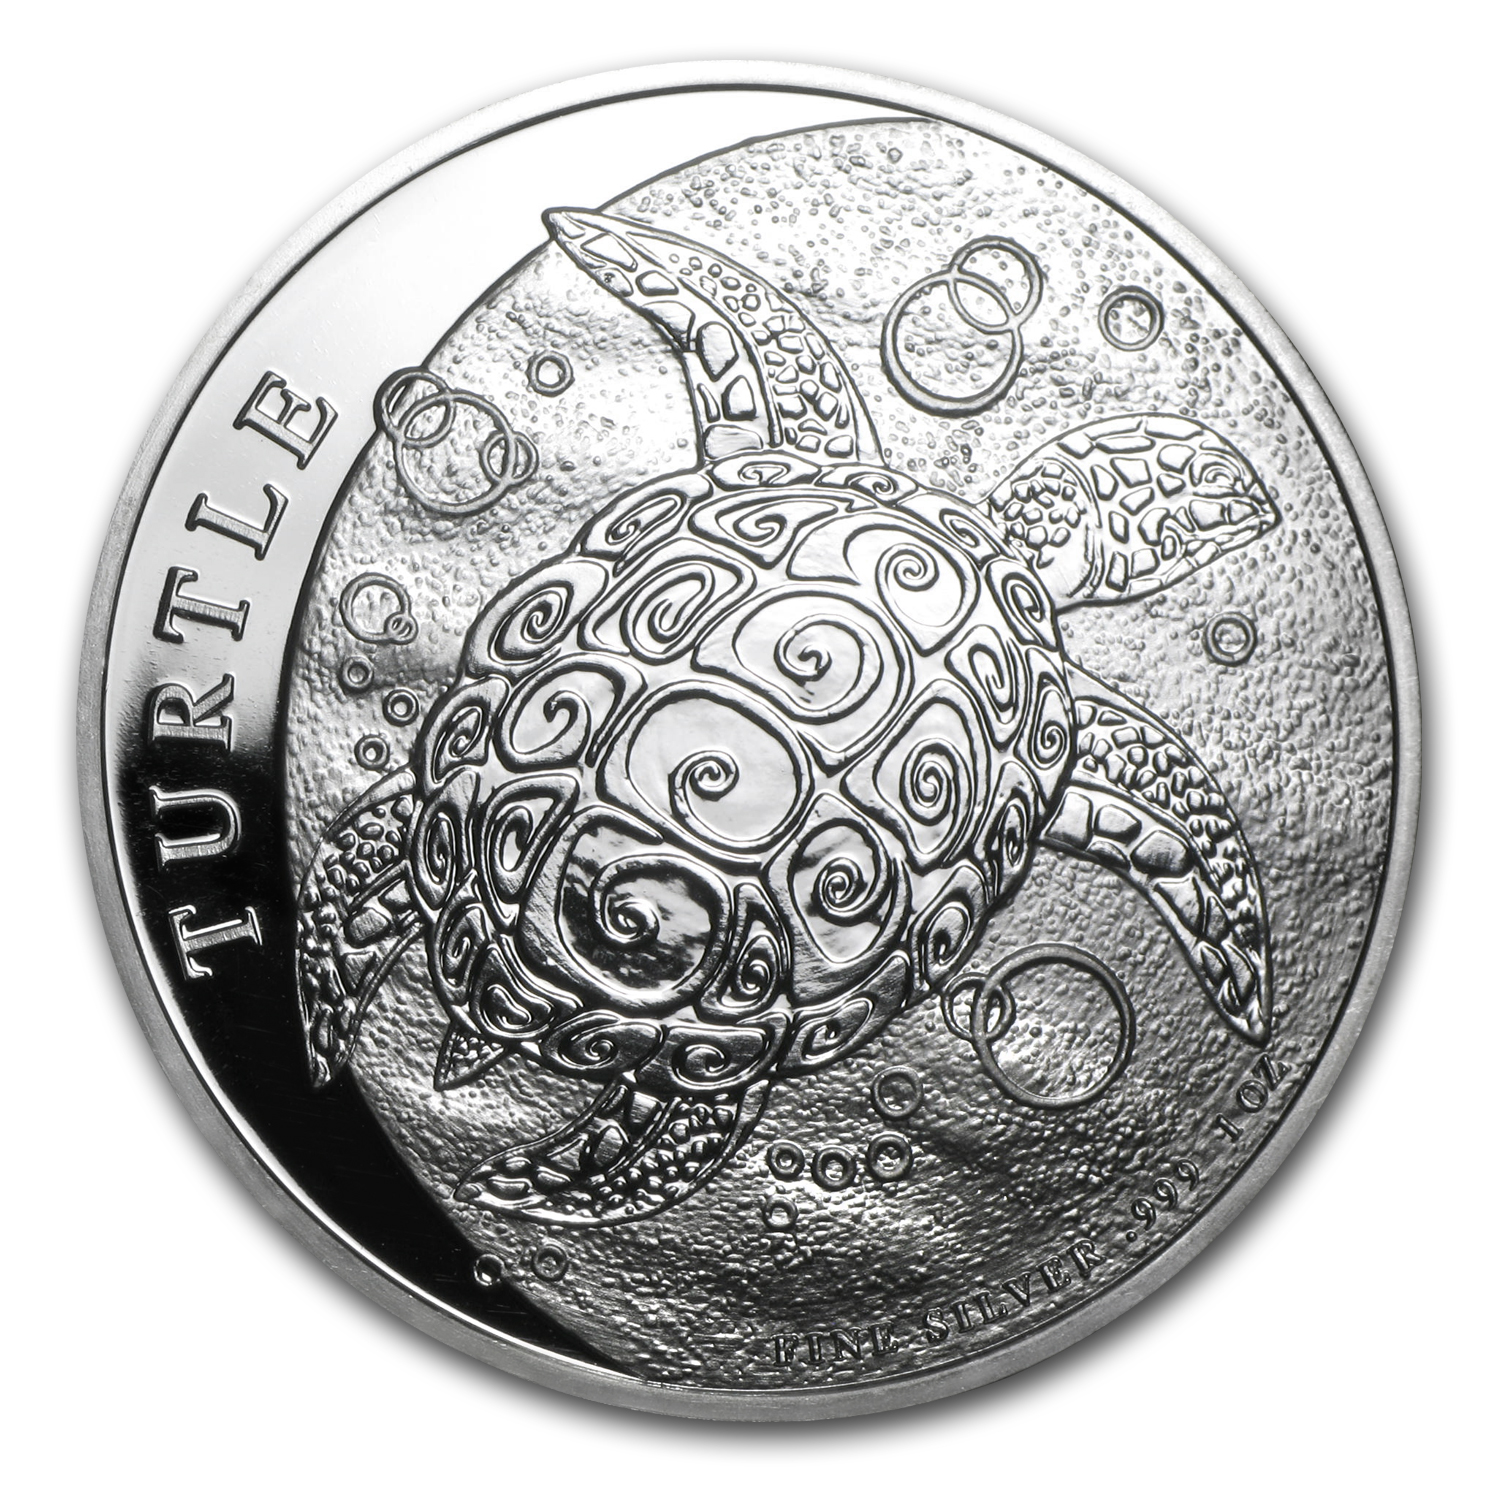 2014 1 oz Silver New Zealand Mint $2 Niue Hawksbill Turtle